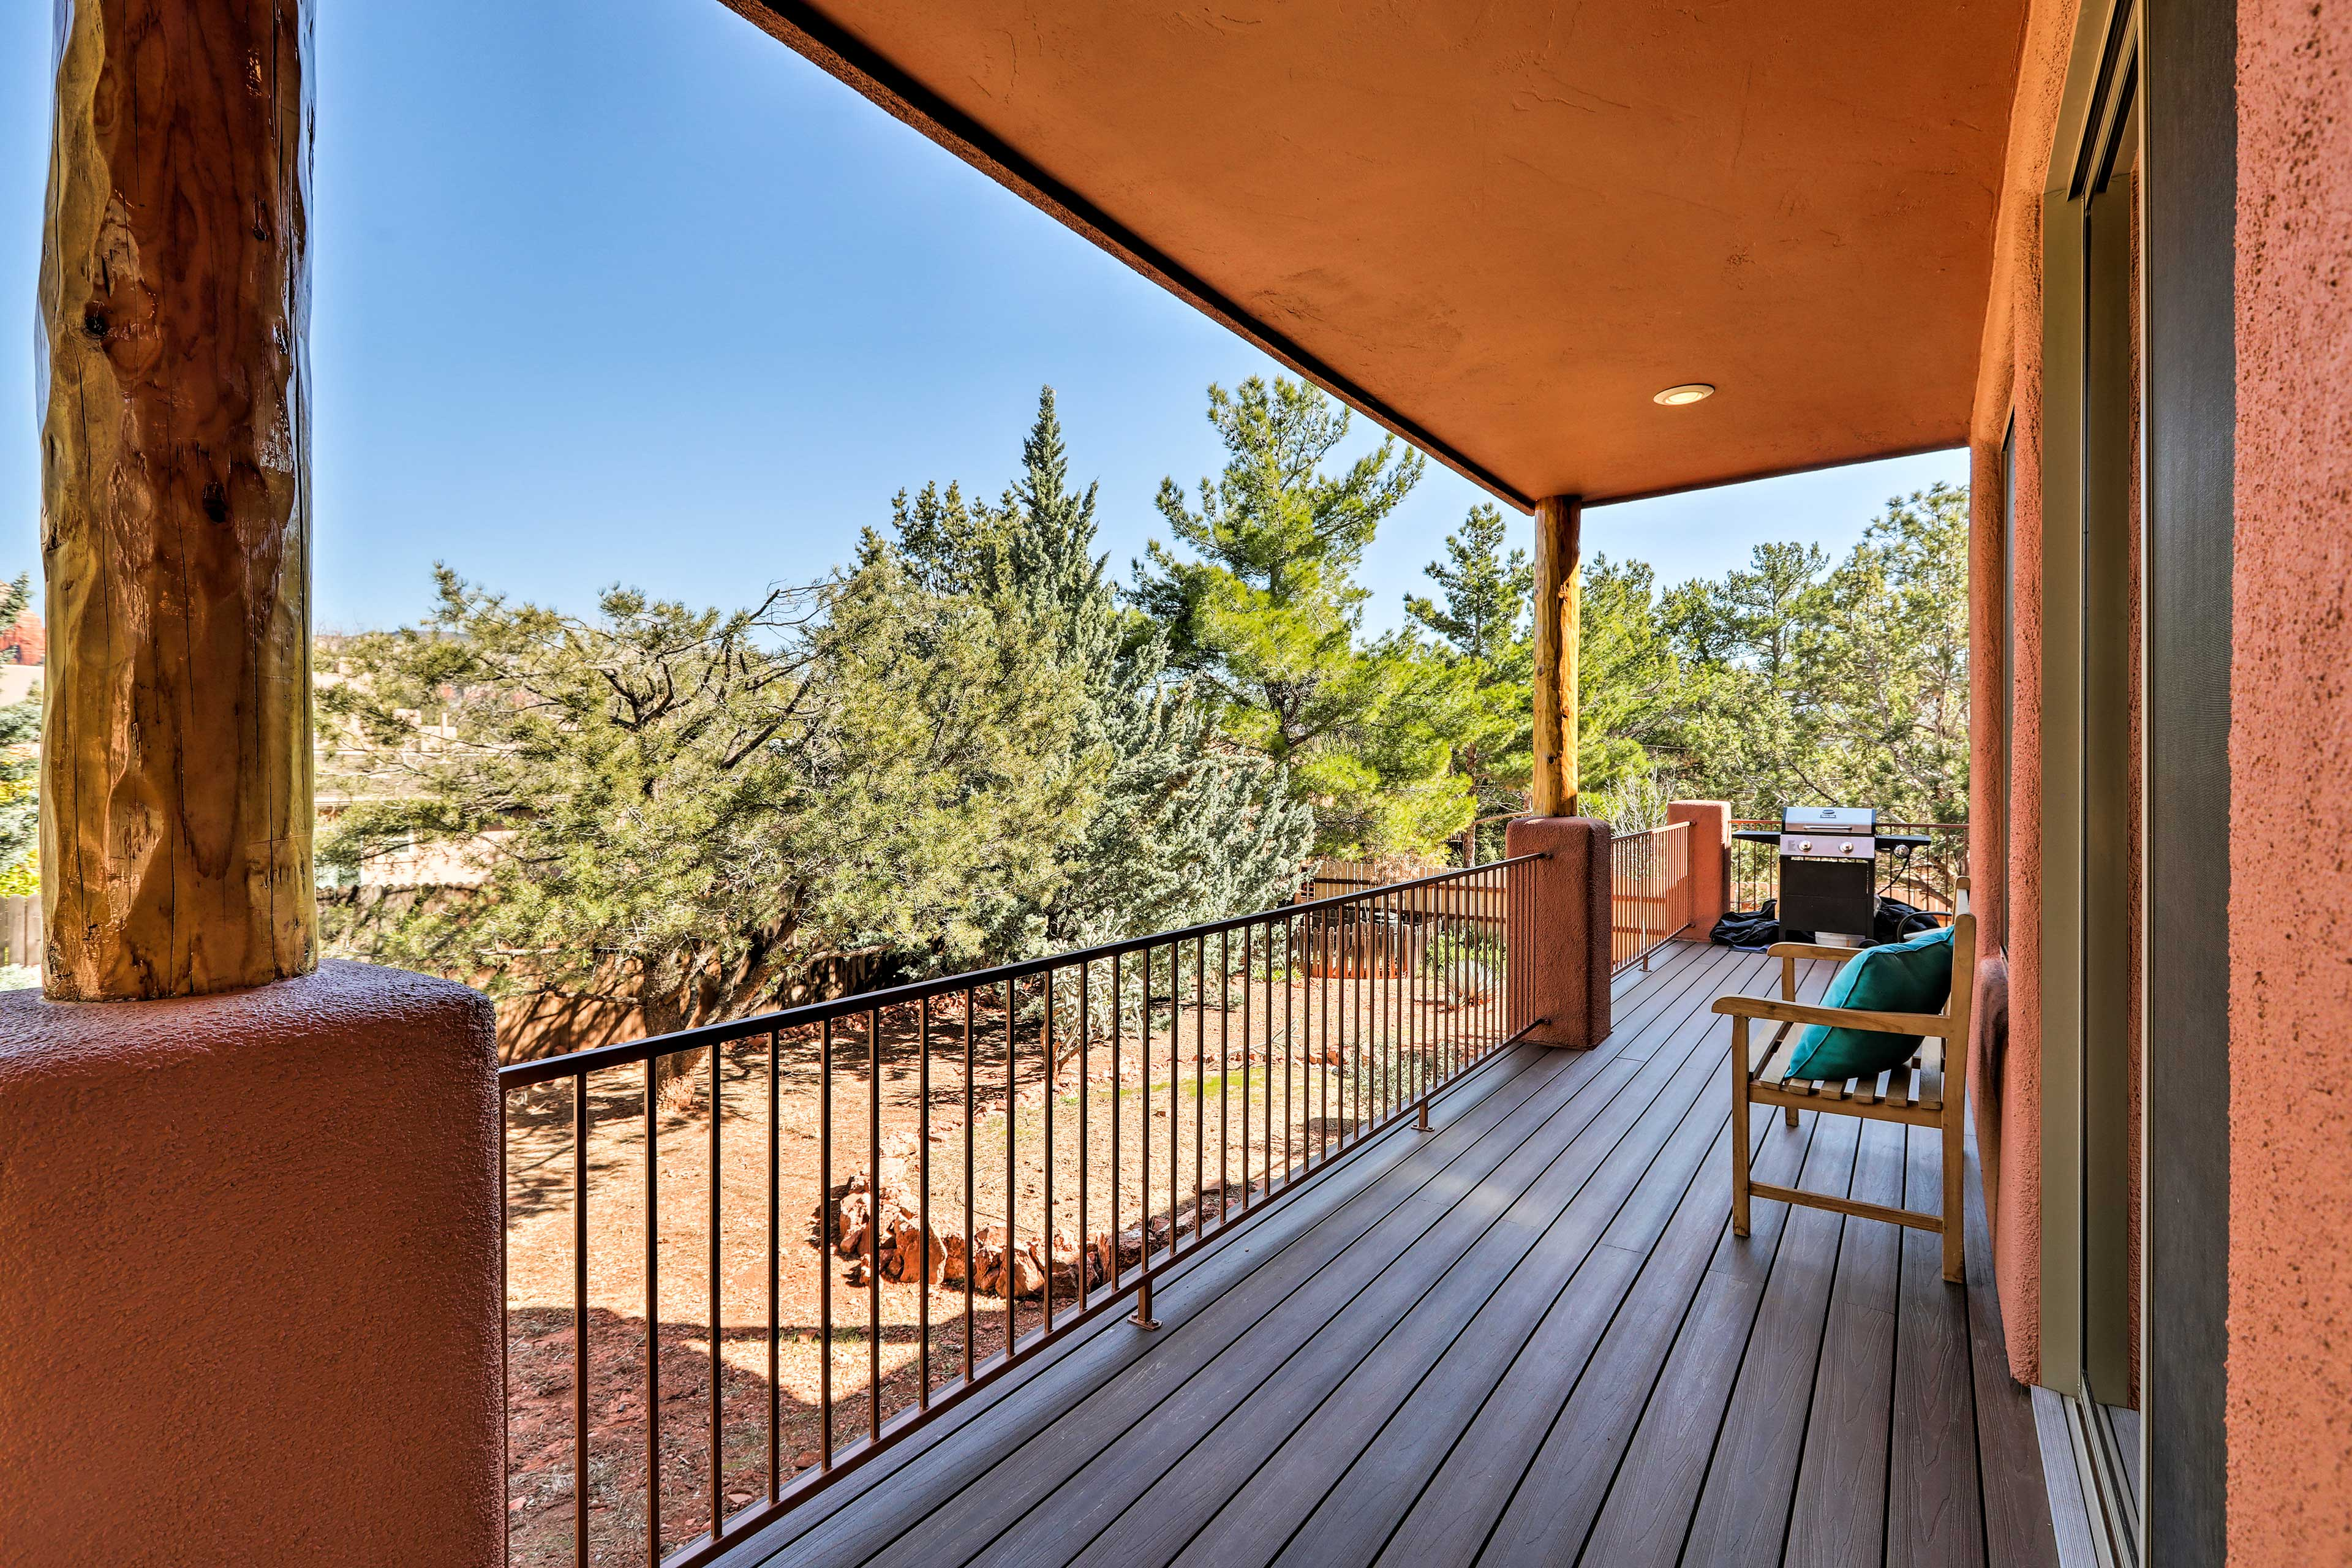 Soak in the red rock views from the covered deck.